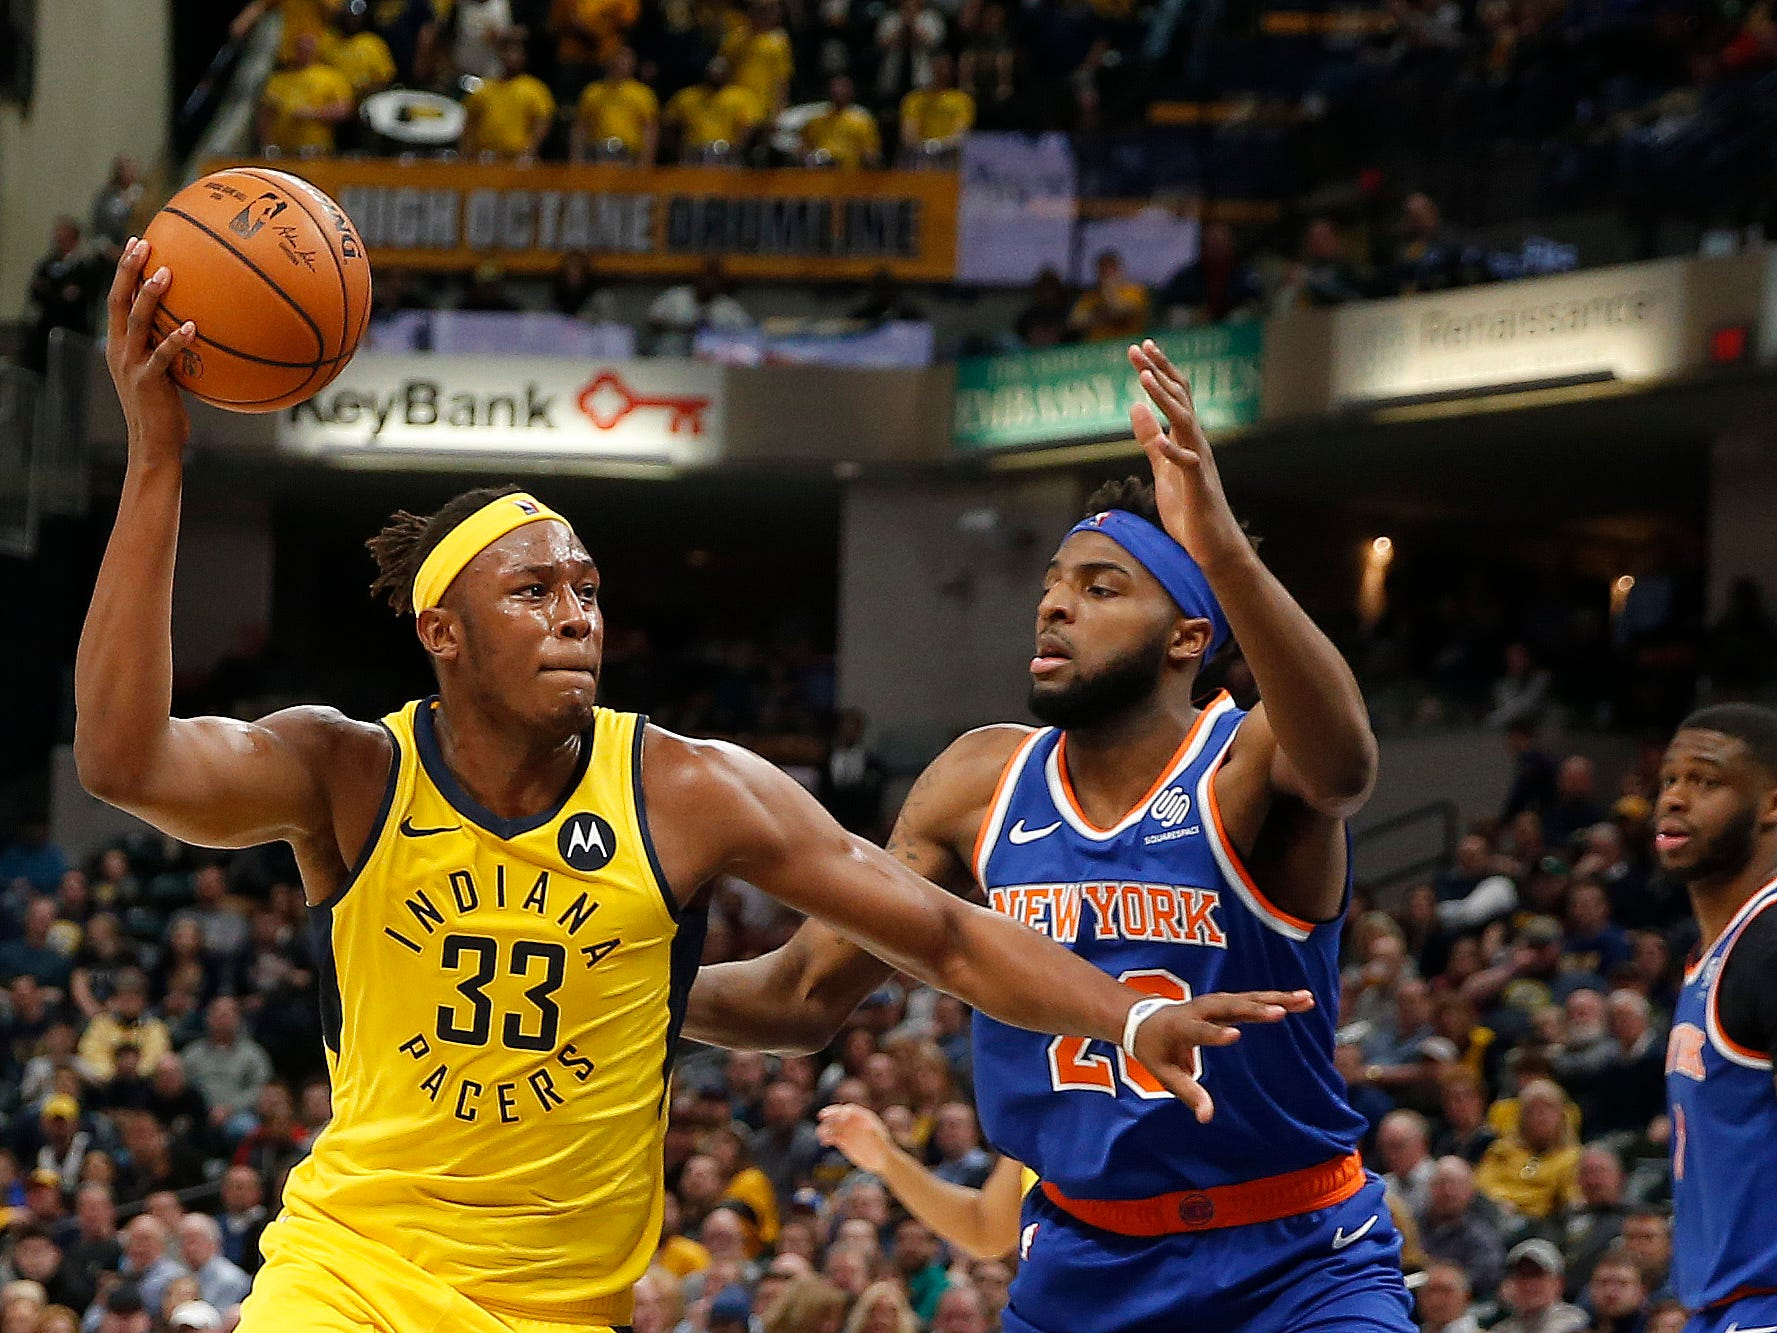 Mar 12, 2019; Indianapolis, IN, USA; Indiana Pacers center Myles Turner (33) is guarded by New York Knicks center Mitchell Robinson (26) during the third quarter at Bankers Life Fieldhouse.